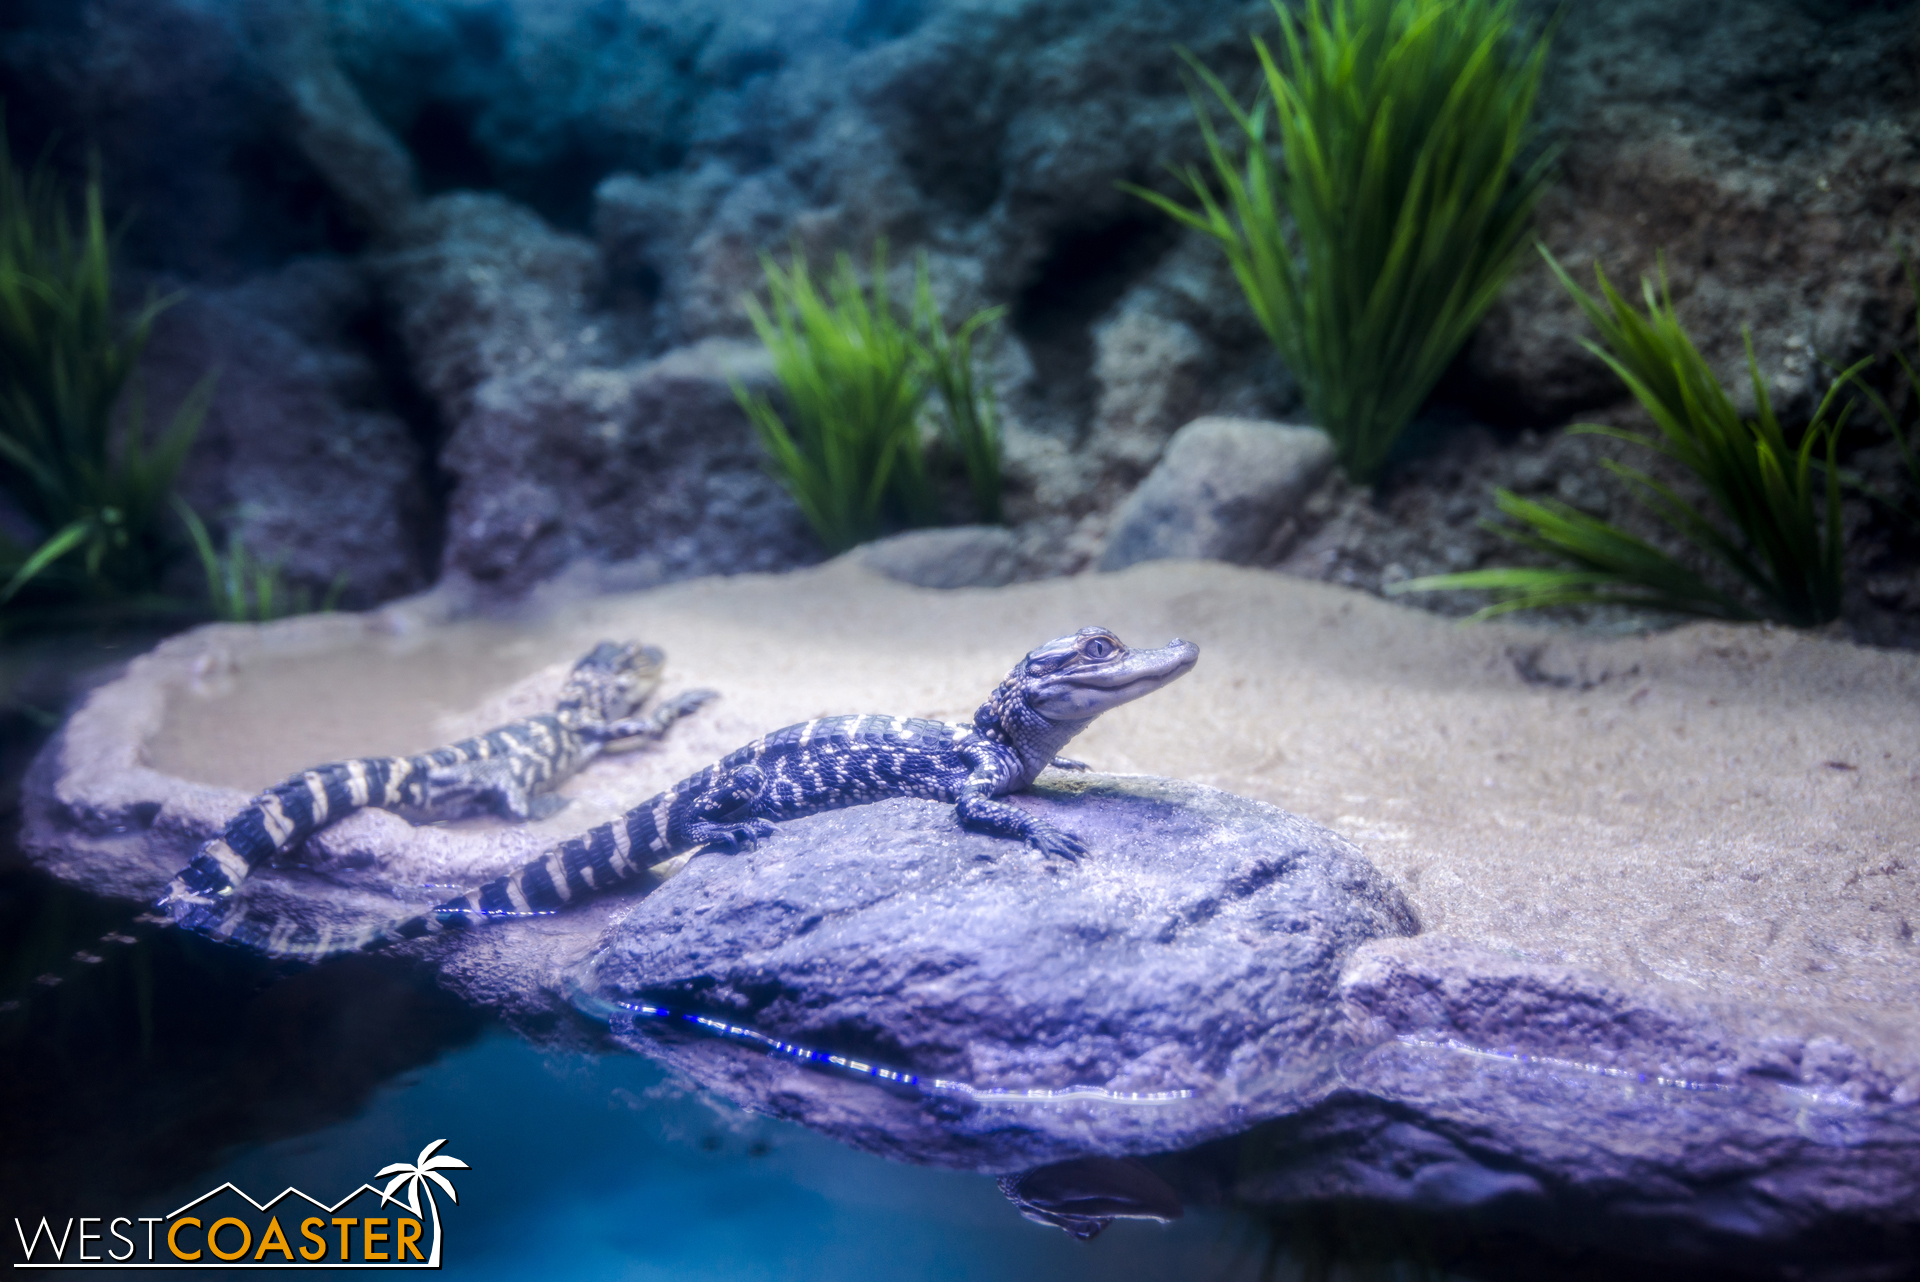 Here's an American Alligator. A small one.